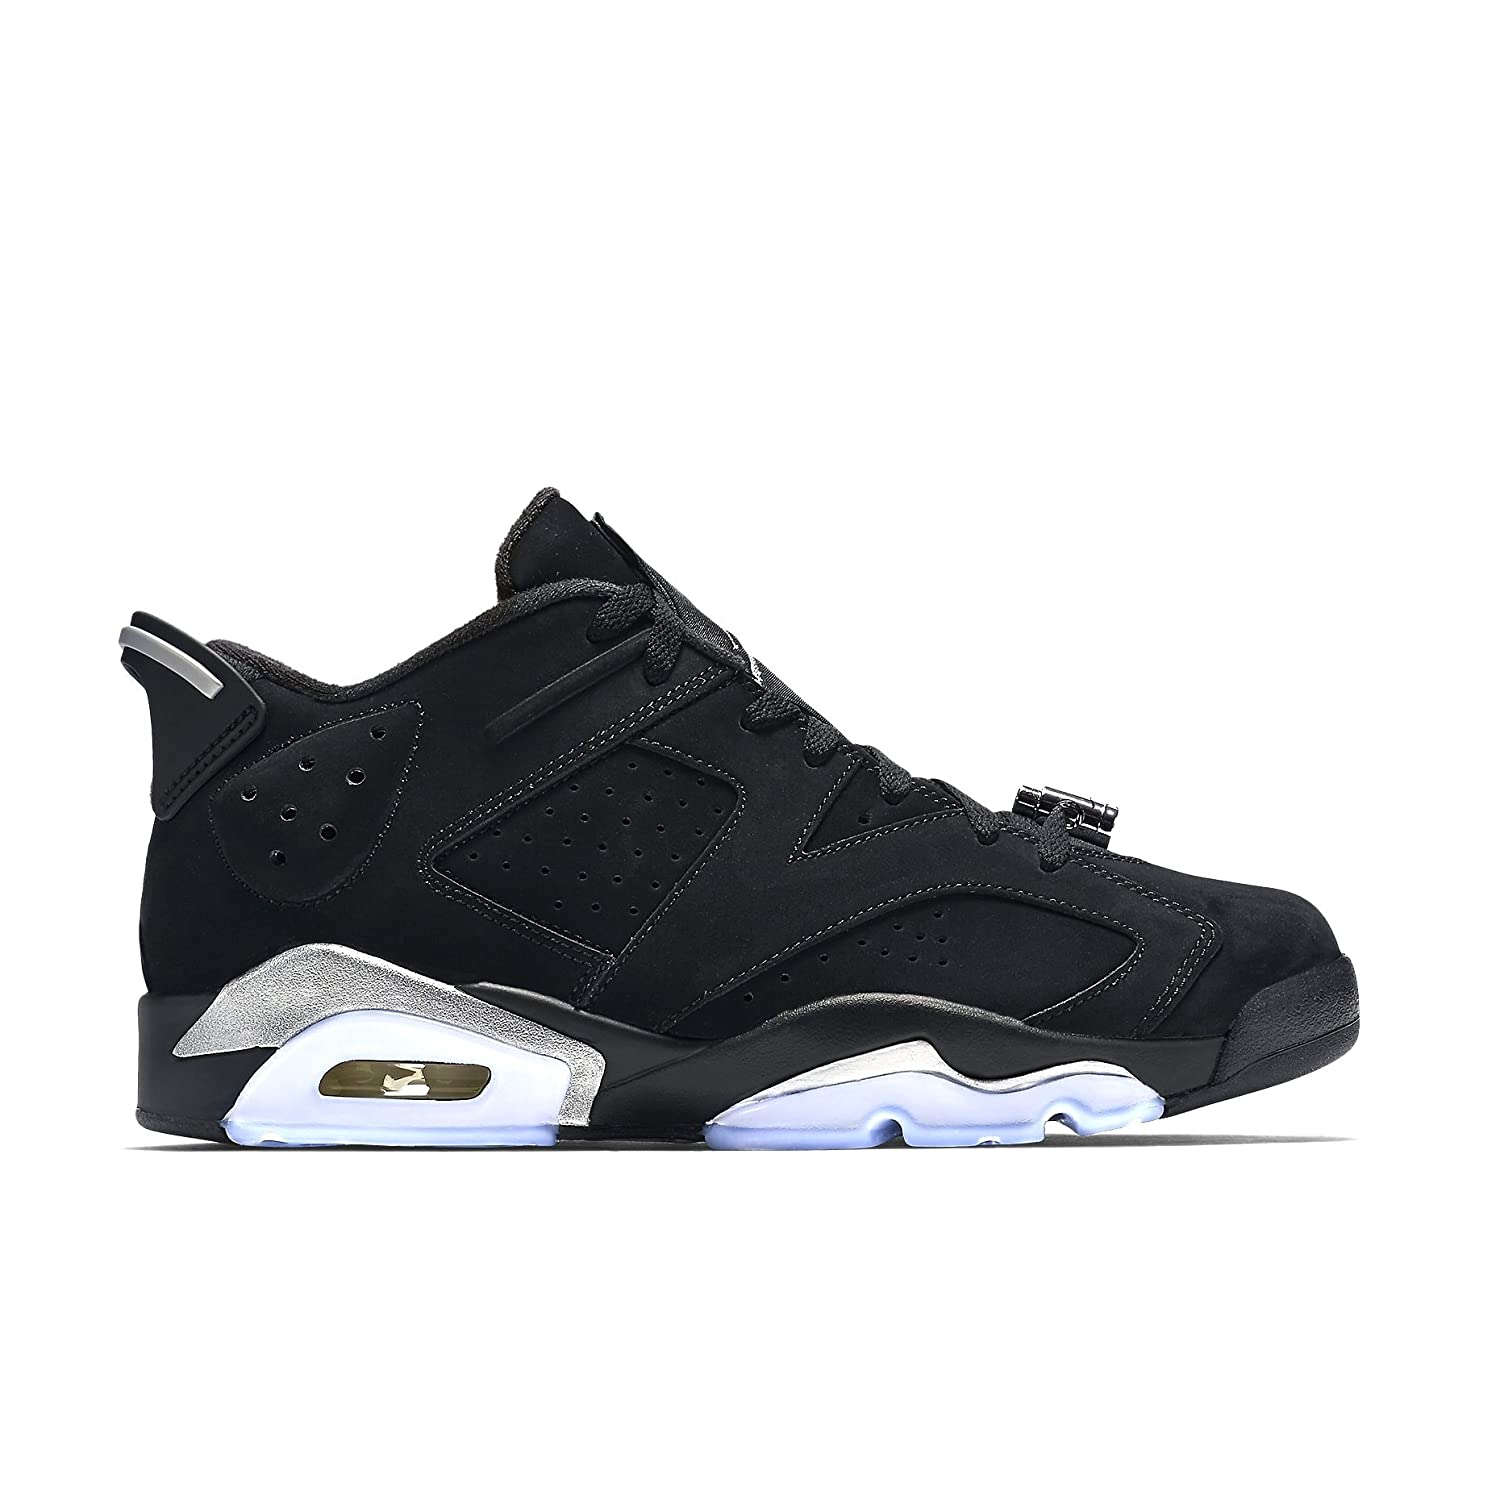 separation shoes b4221 301f3 Air Jordan 6 Retro Low